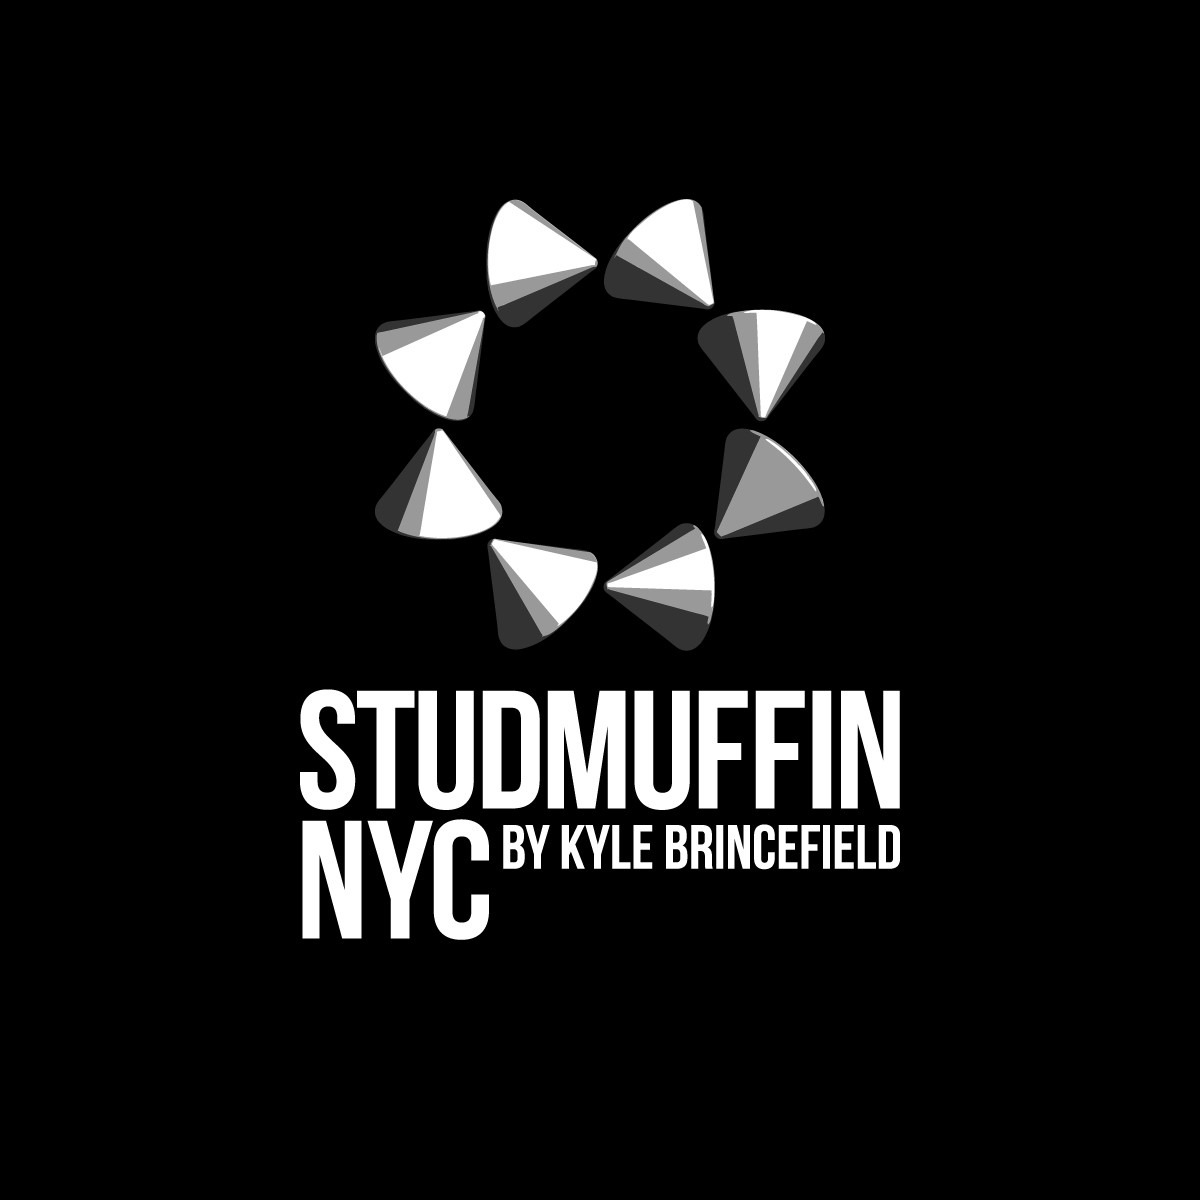 Studmuffin NYC Logo Design